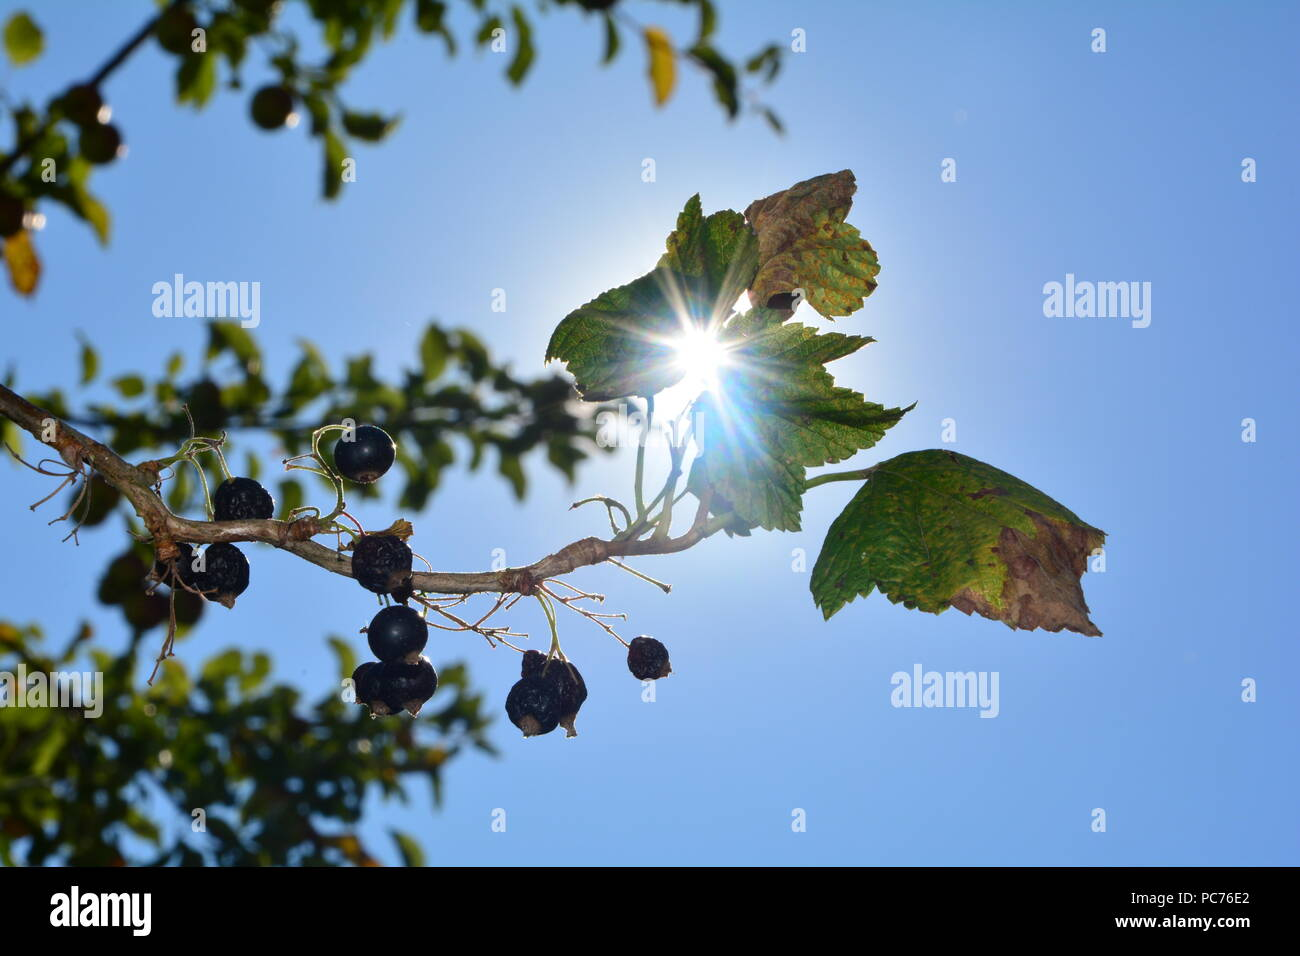 Dried berries with leaves on the branch in front of blue sky with sunrays - Stock Image